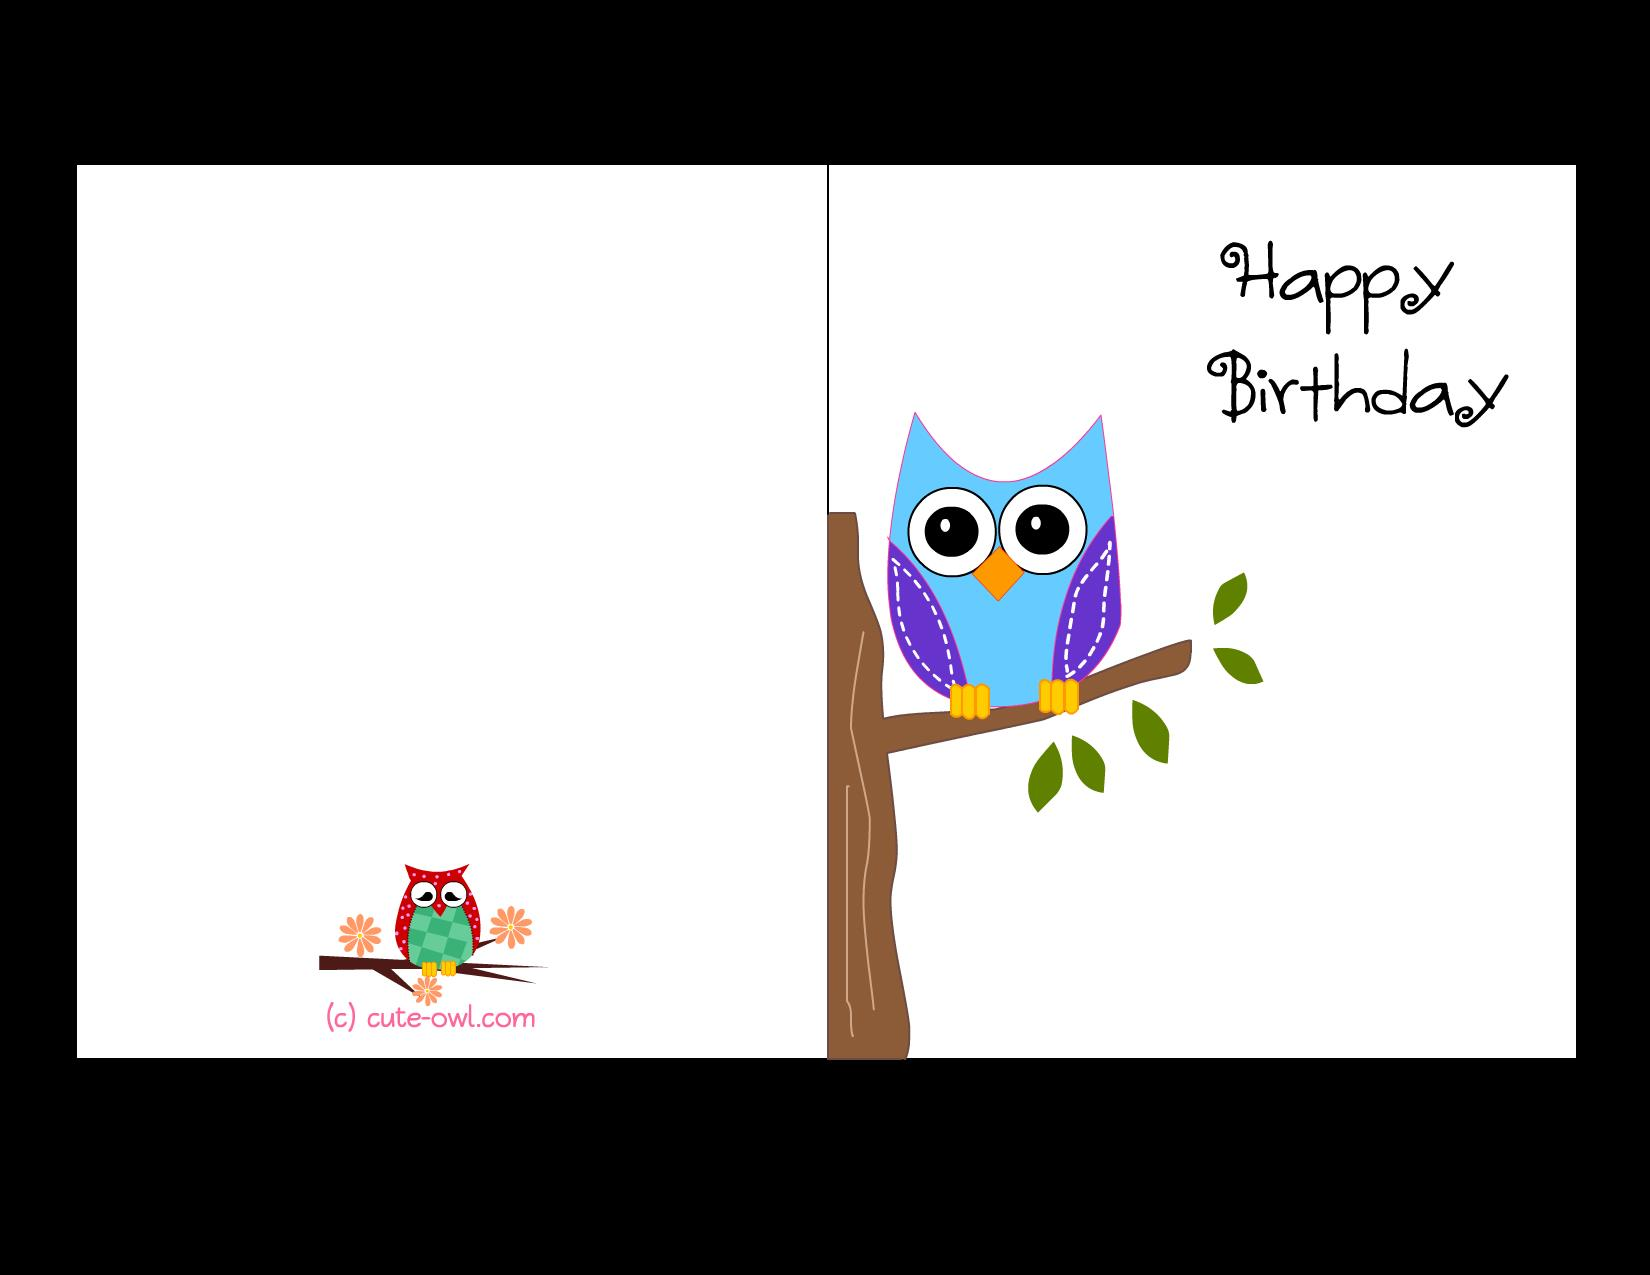 birthday card designs free printable ; birthday-card-for-girlfriend-printable-owl-birthday-card-3